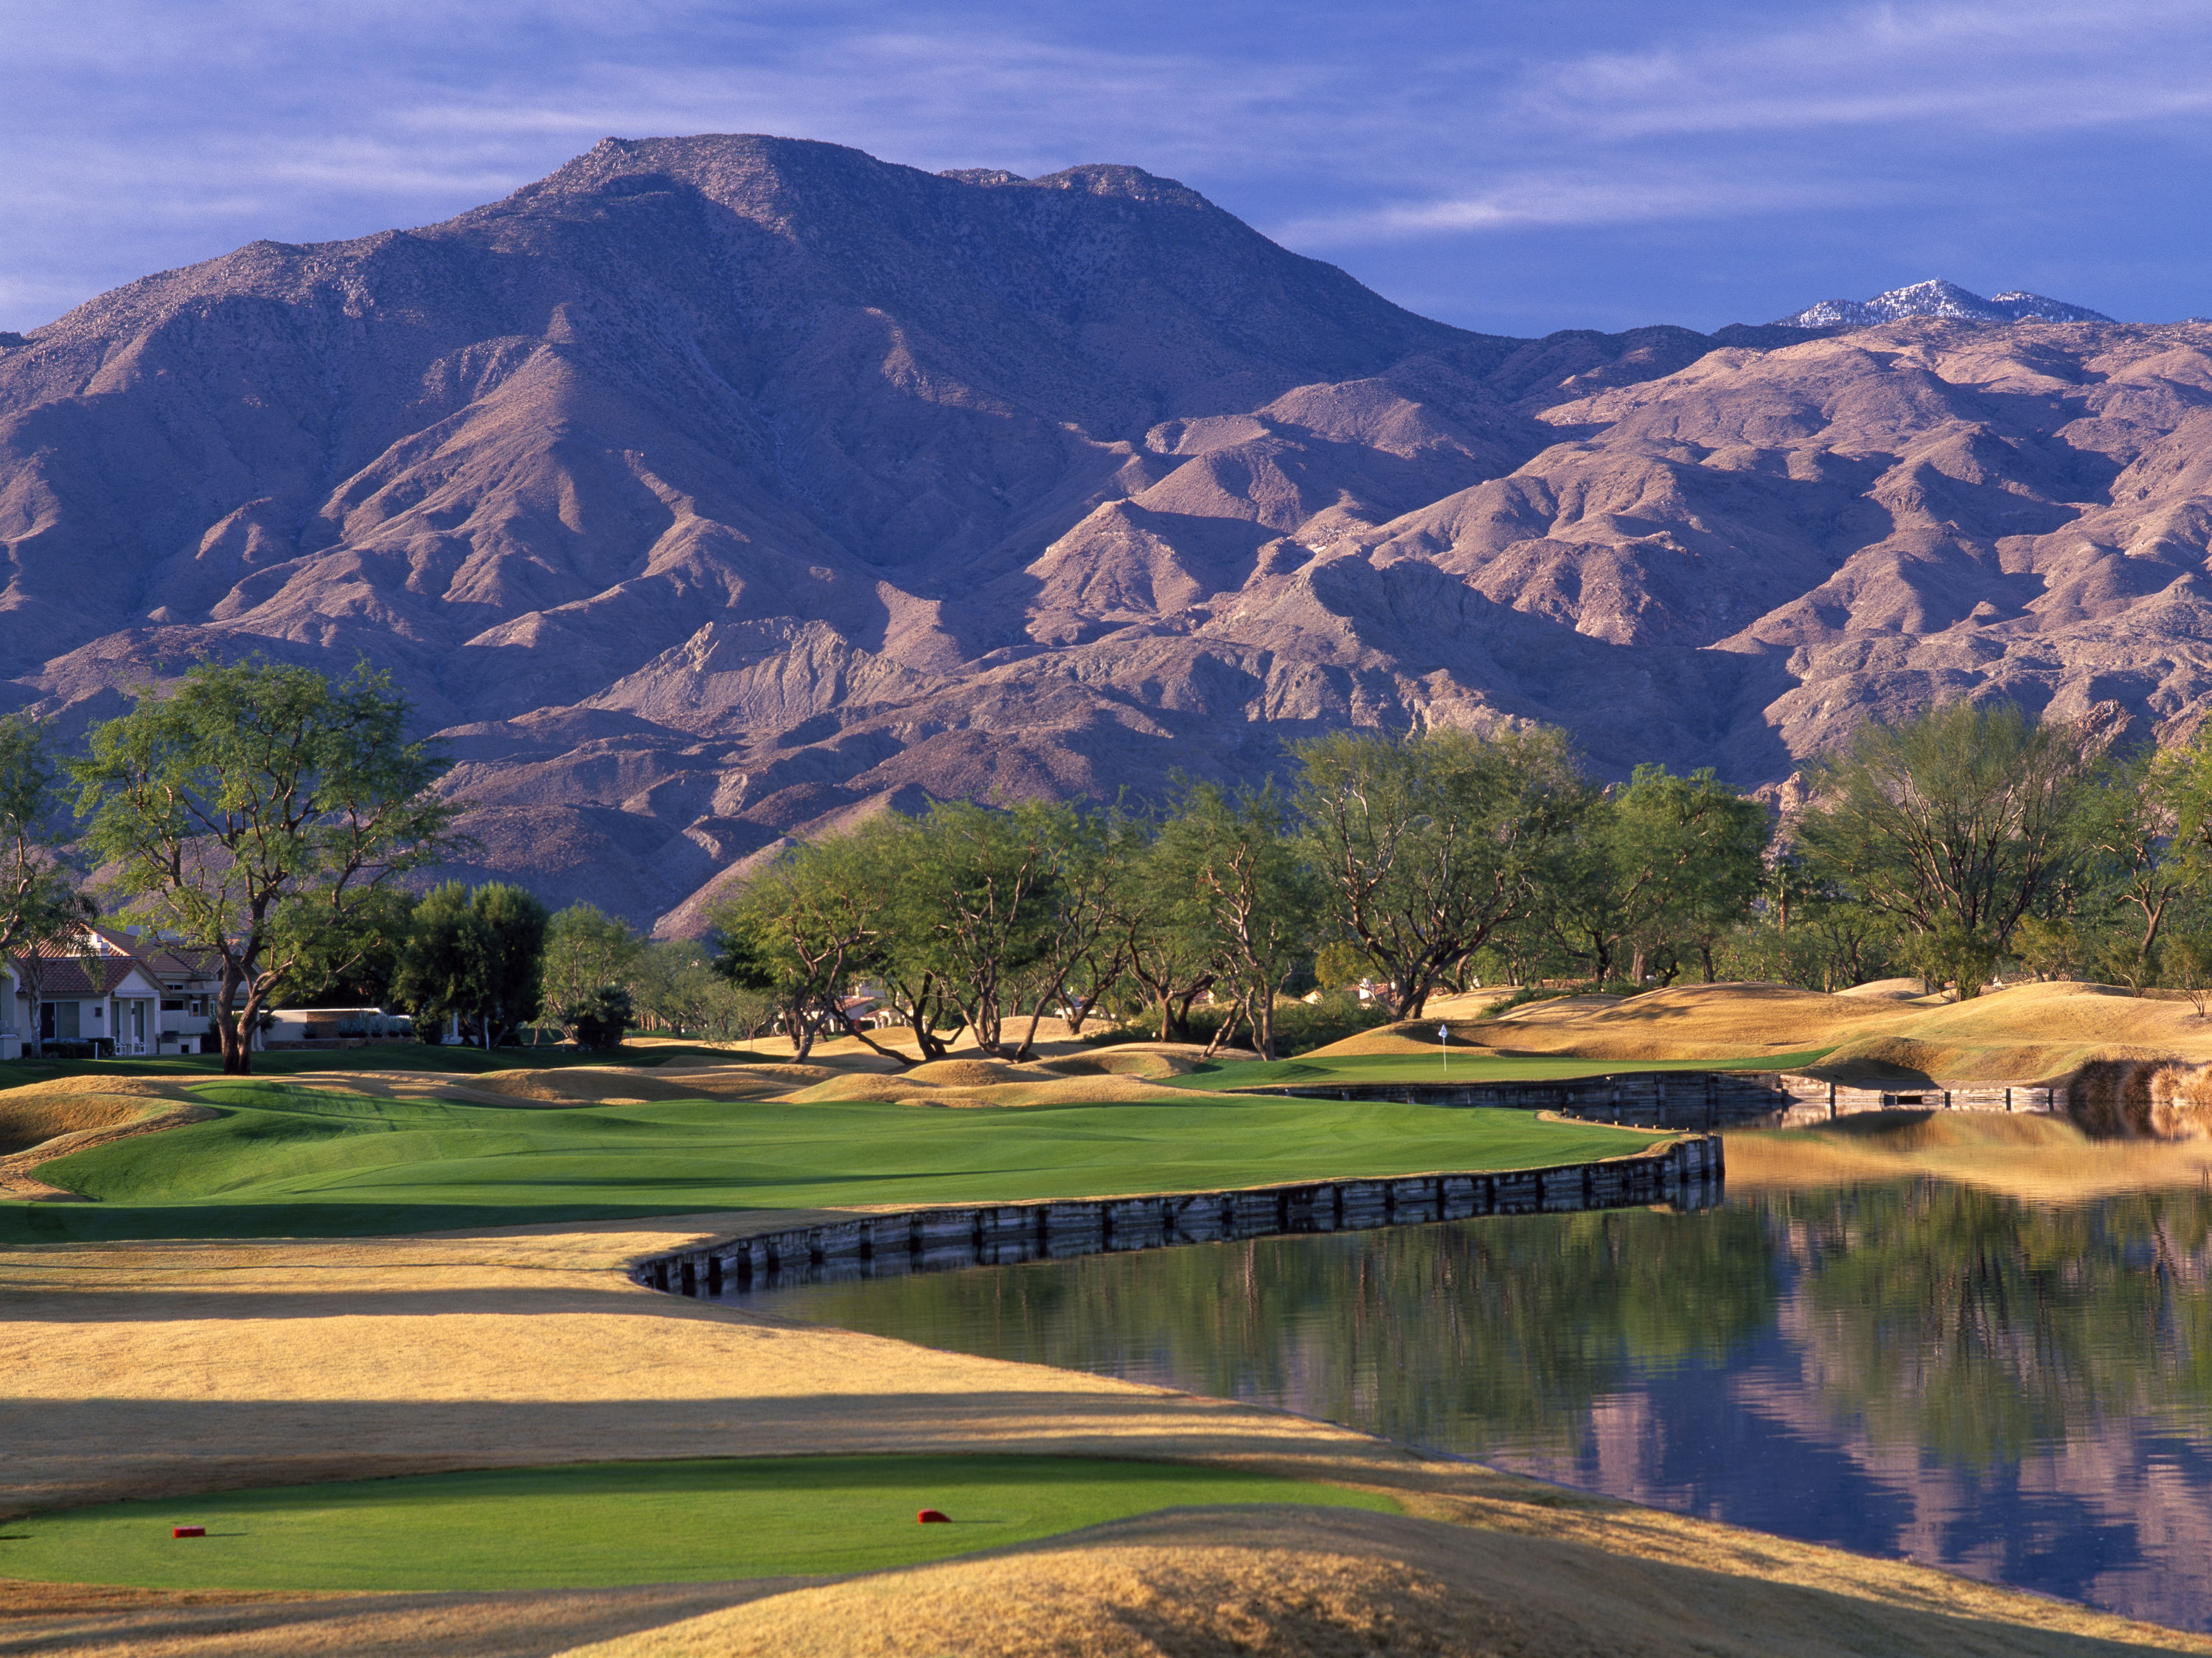 Pga west cover picture